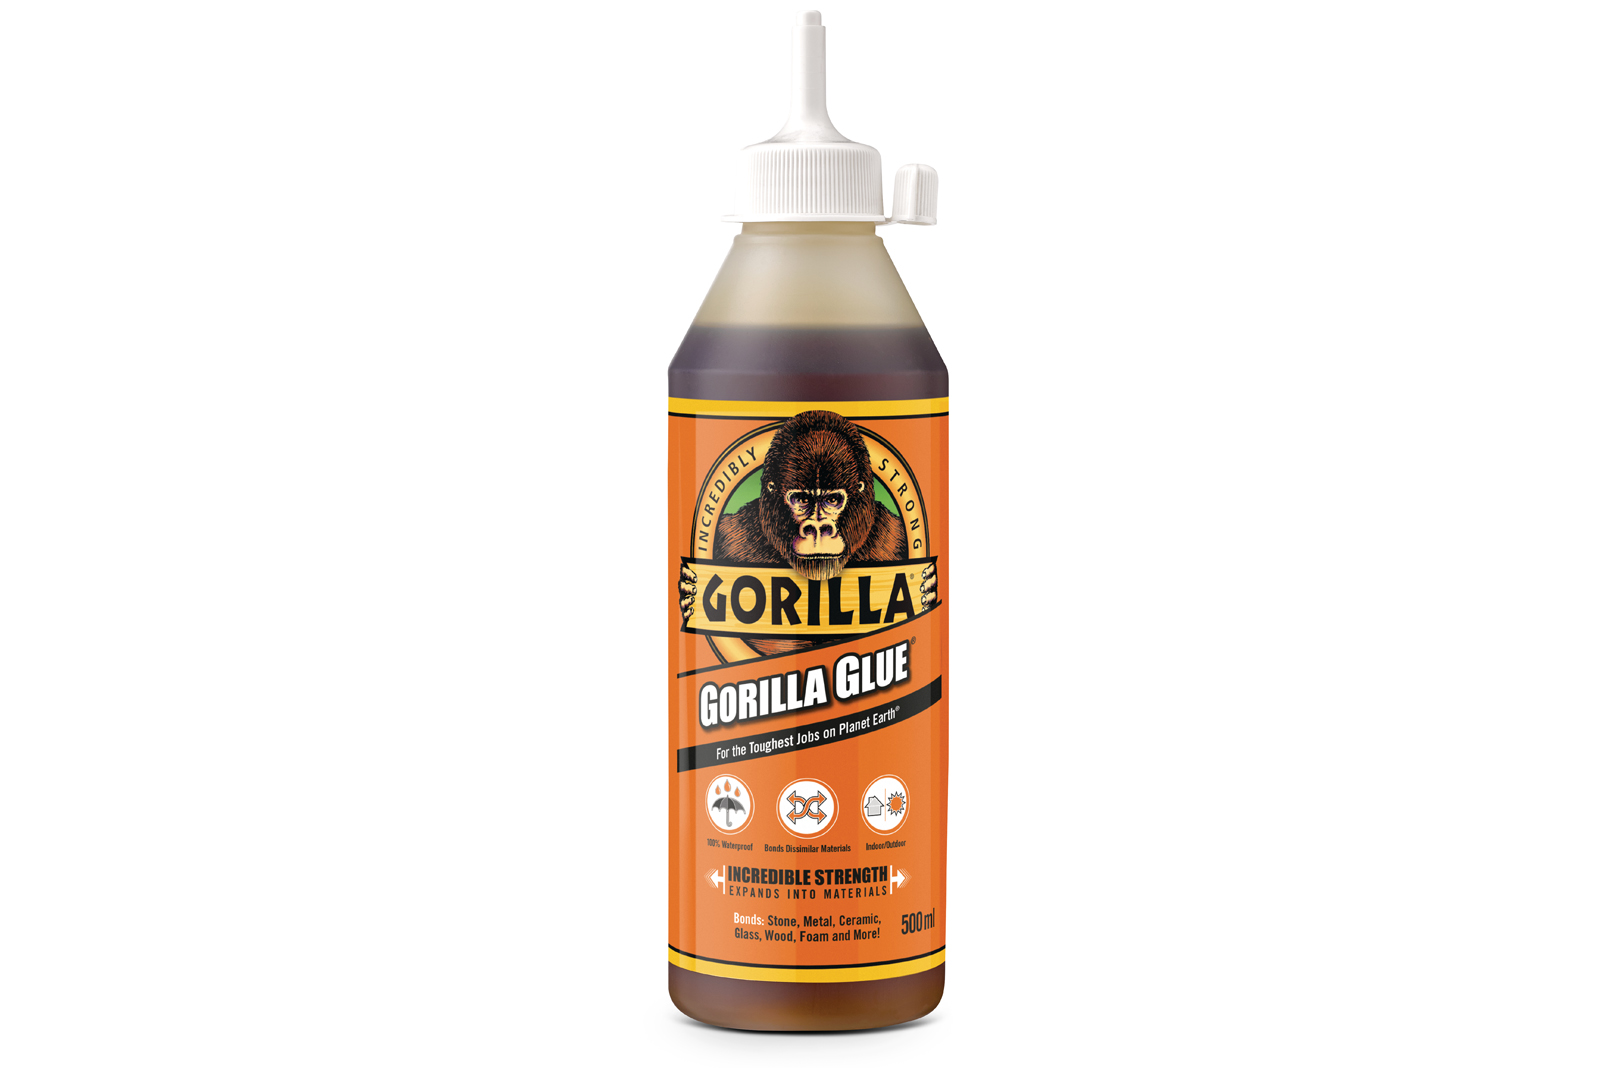 25 bottles of Gorilla Glue to win